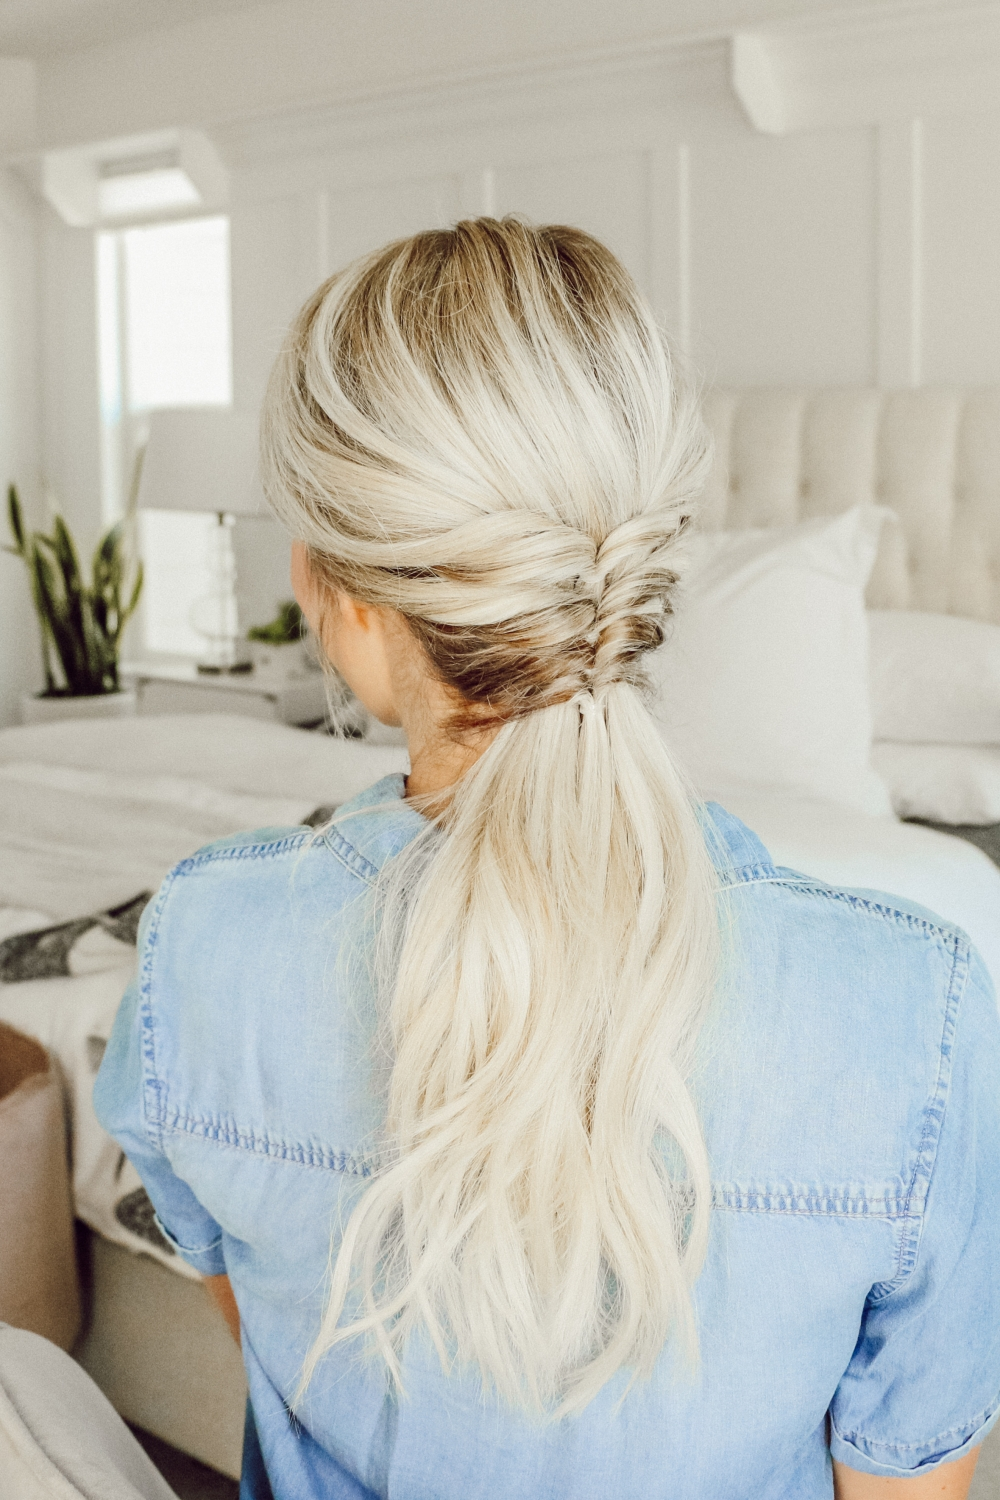 Wondrous Ponytail Hairstyles For Spring And Summer Schematic Wiring Diagrams Amerangerunnerswayorg